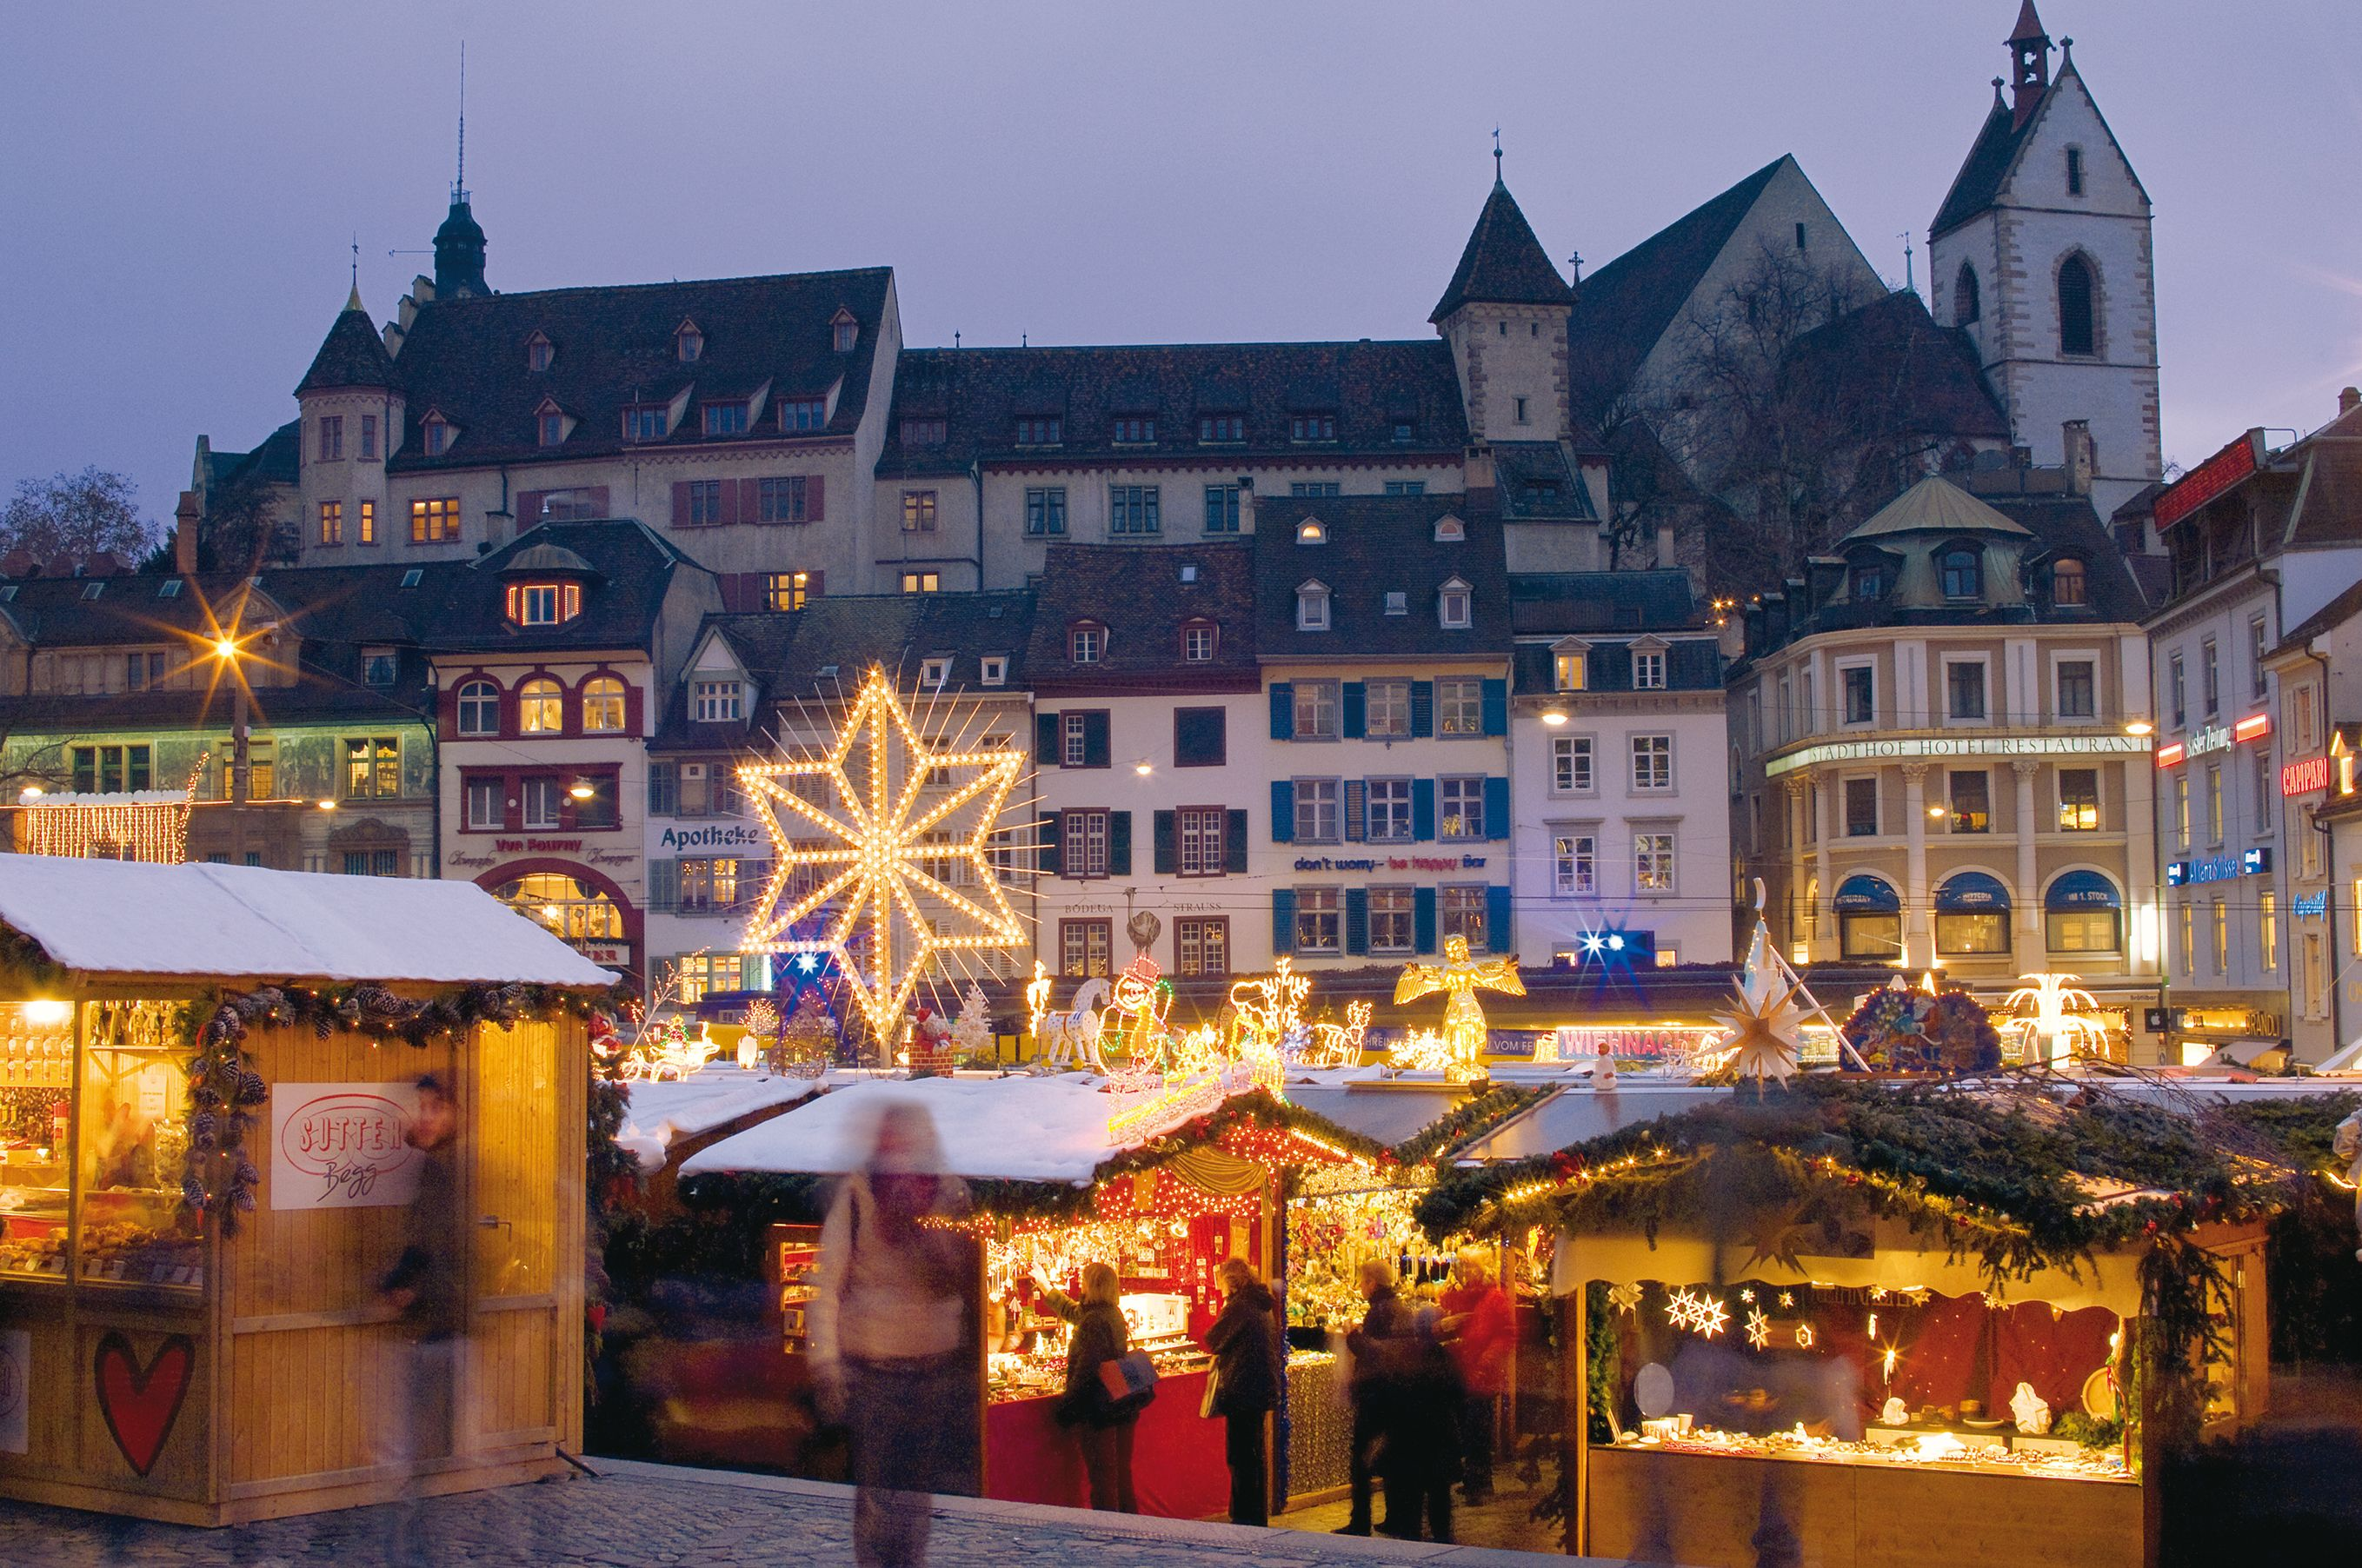 Basel Christmas Market.The Basel Christmas Market Is One Of The Most Beautiful In